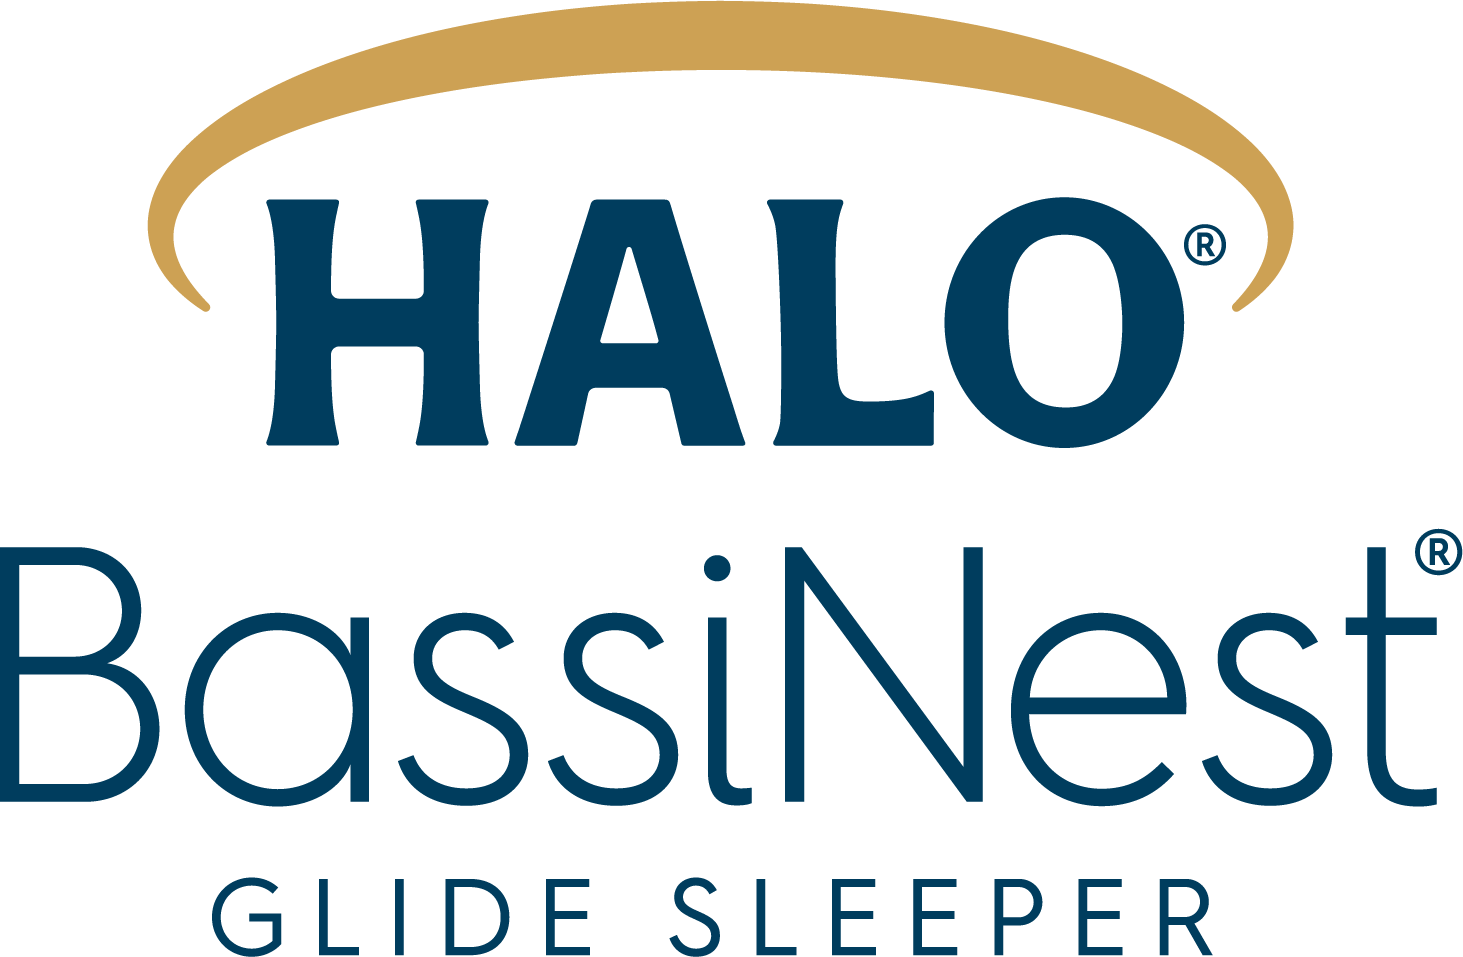 halo bassinest glide sleeper logo